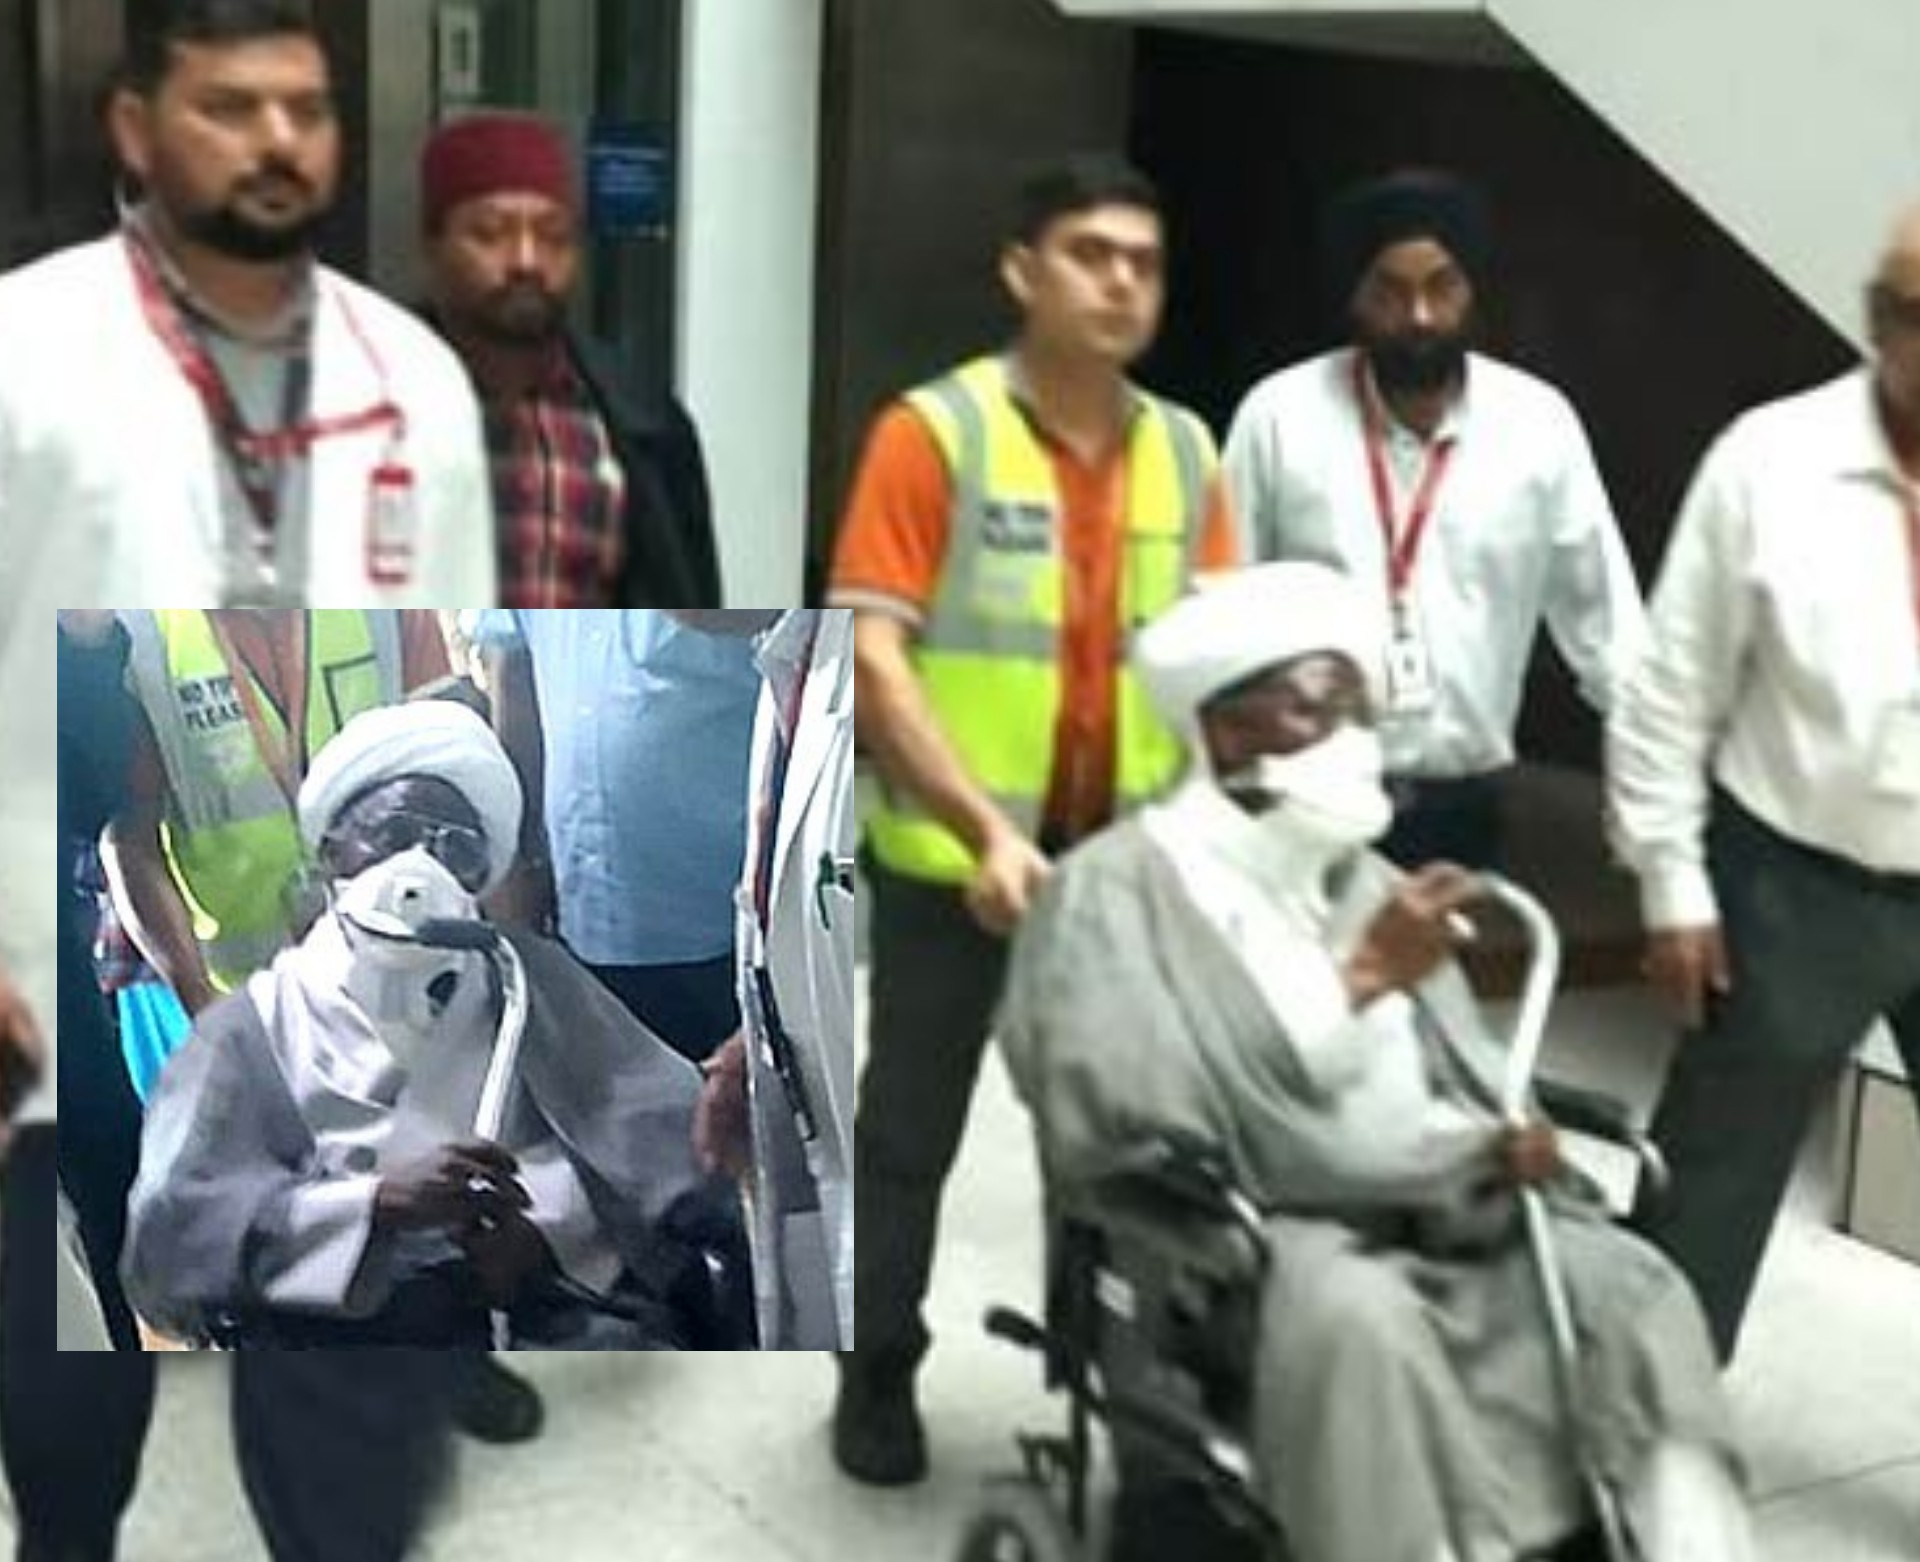 Shiites leader, El-Zakzaky, wife arrive in India for medical treatment  » Latest News » Tribune Online